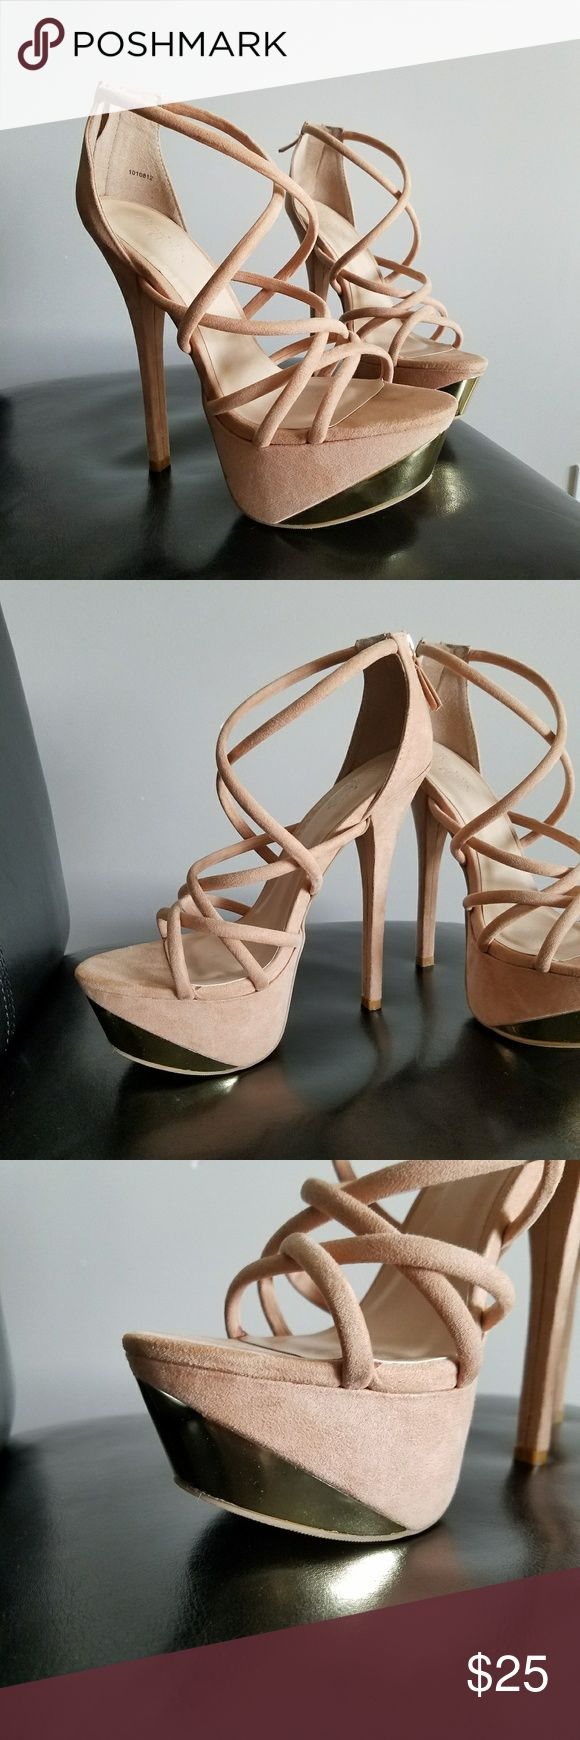 Nude Strappy Heels w Gold Accent | 8 Ordered online, they are so cute, I paid full price plus shipping! Never know what size to order here, these were just a tiny bit too loose on me so have not worn them besides for one brief dinner, in excellent condition! Charlotte Russe Shoes Heels